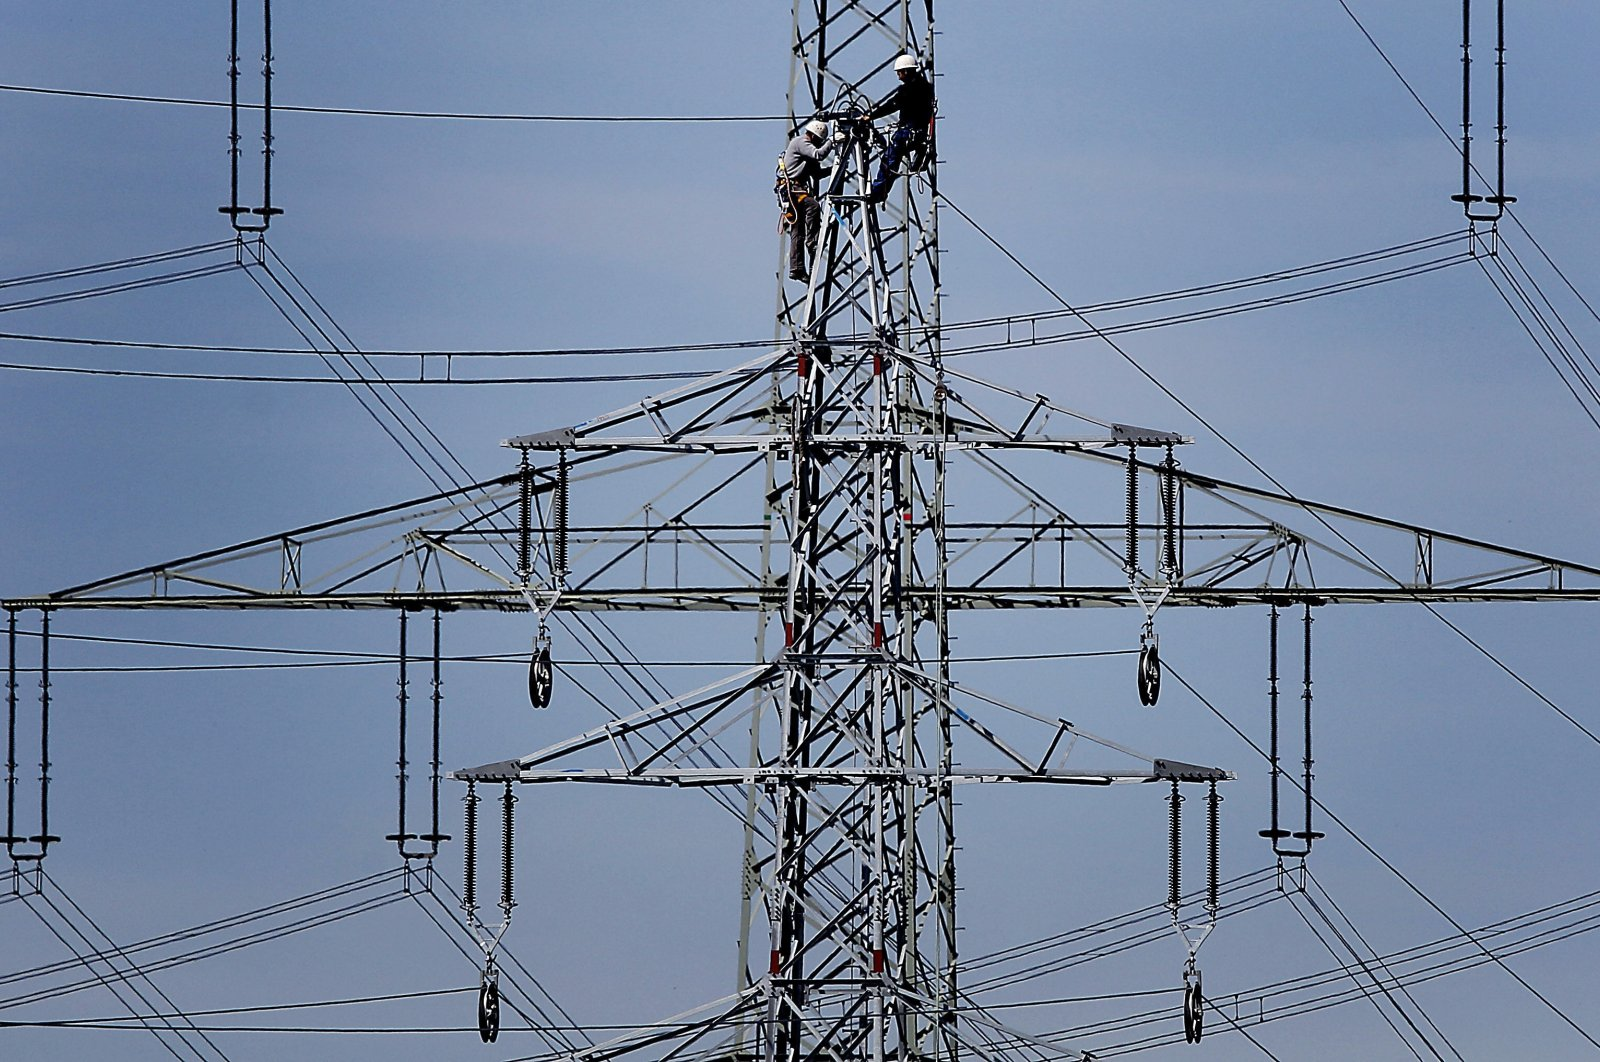 Workers of the German energy company RWE prepare the power supply on a high power pylon in Moers, Germany, April 11, 2011. (AP Photo)